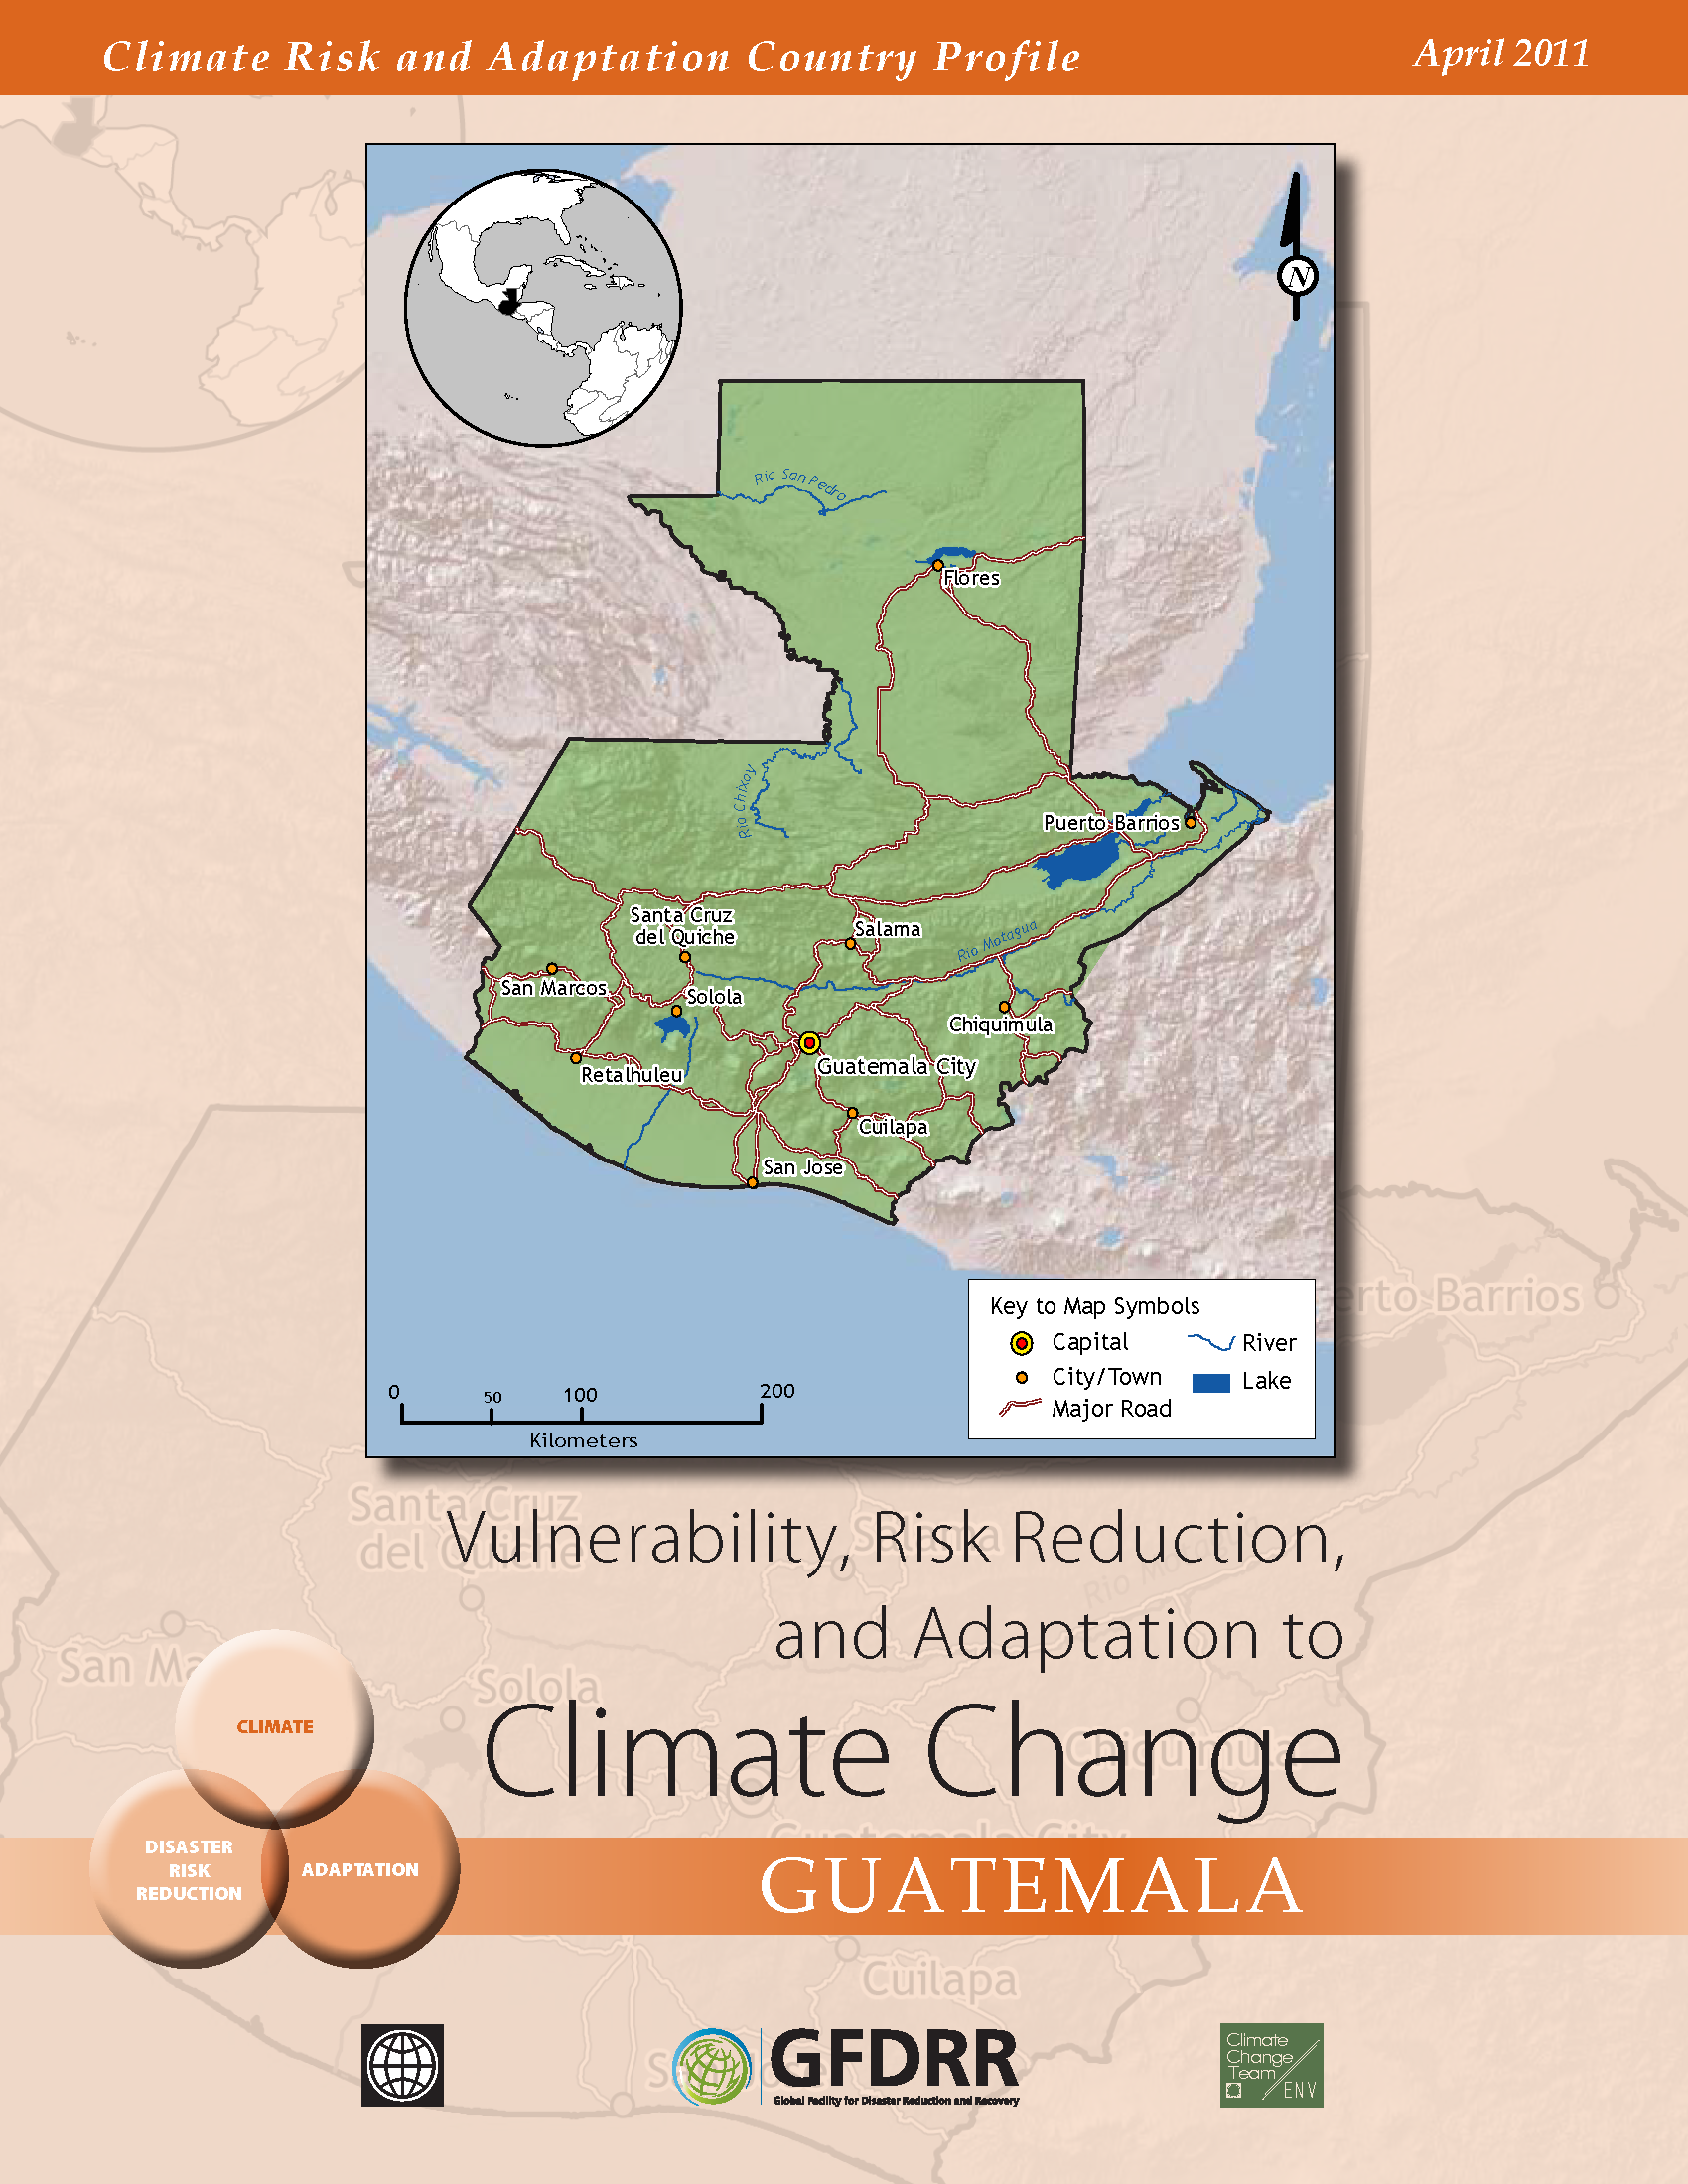 Climate Risk and Adaptation Country Profile: Guatemala